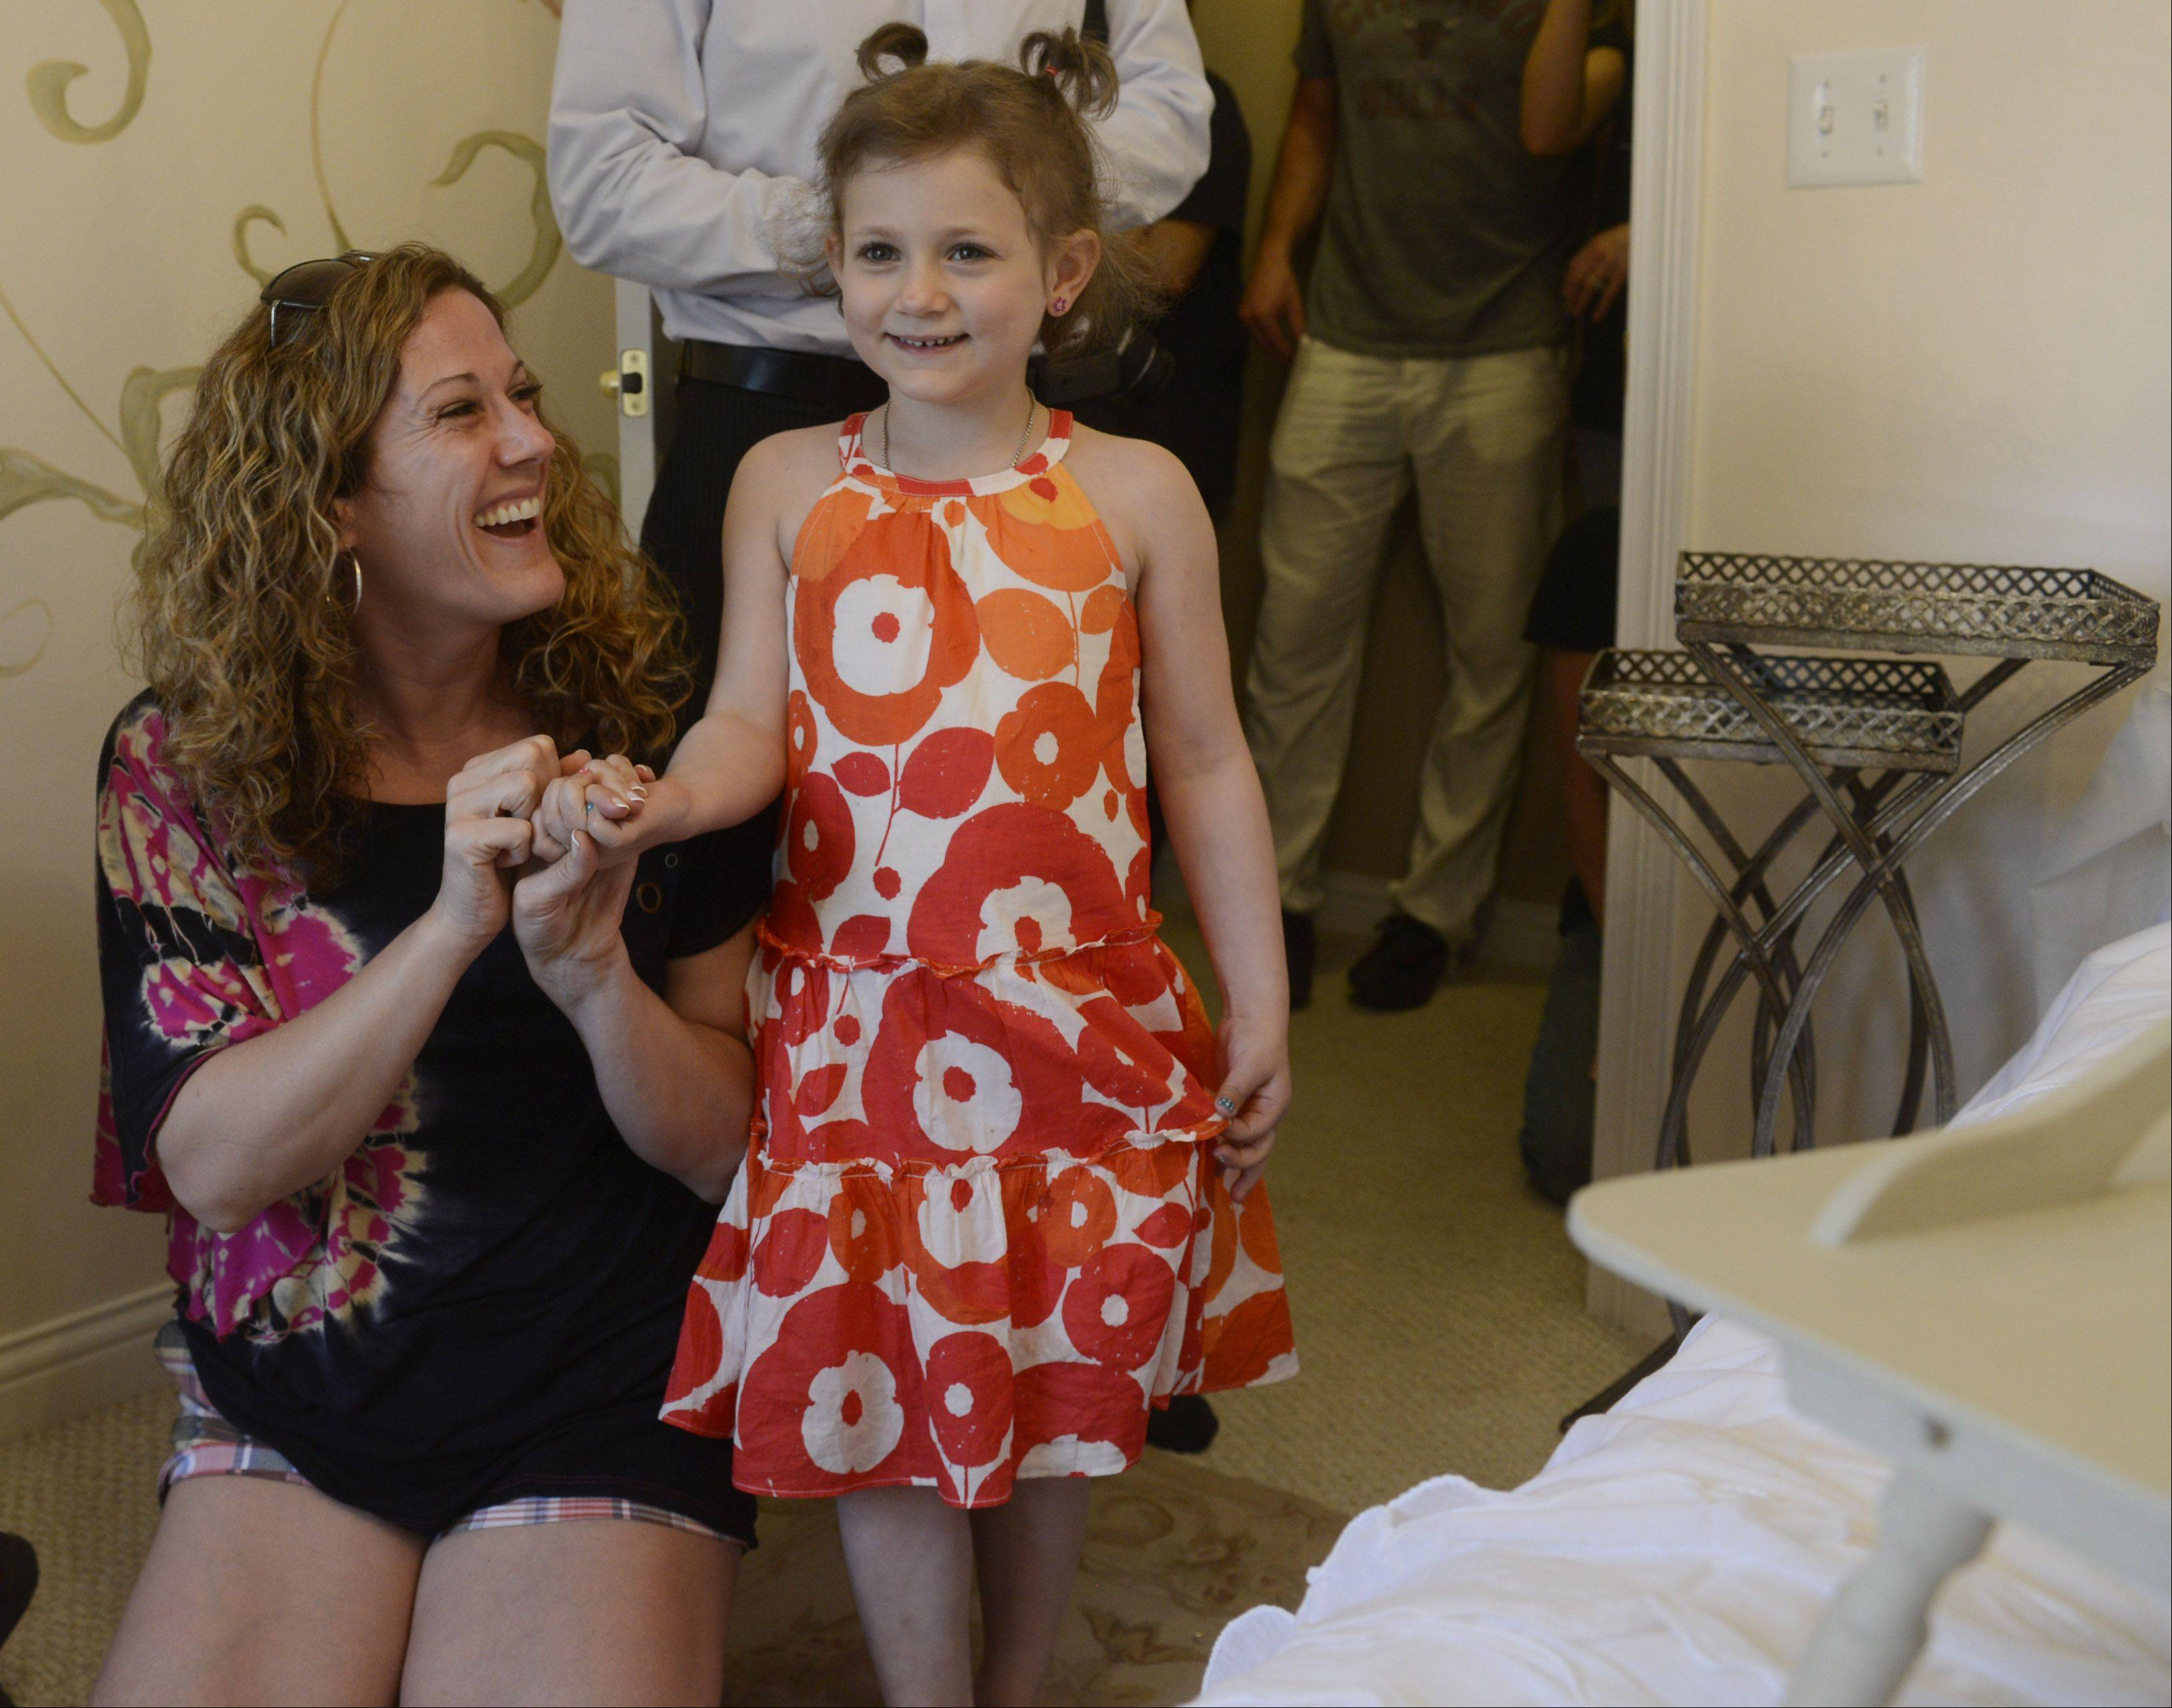 Kennedy Khalimsky, 6, of Palatine and her mom, Edan Gelt, react to the bedroom makeover provided by the new Chicago-area chapter of Special Spaces National. Kennedy has been diagnosed with leukemia and is undergoing treatment.